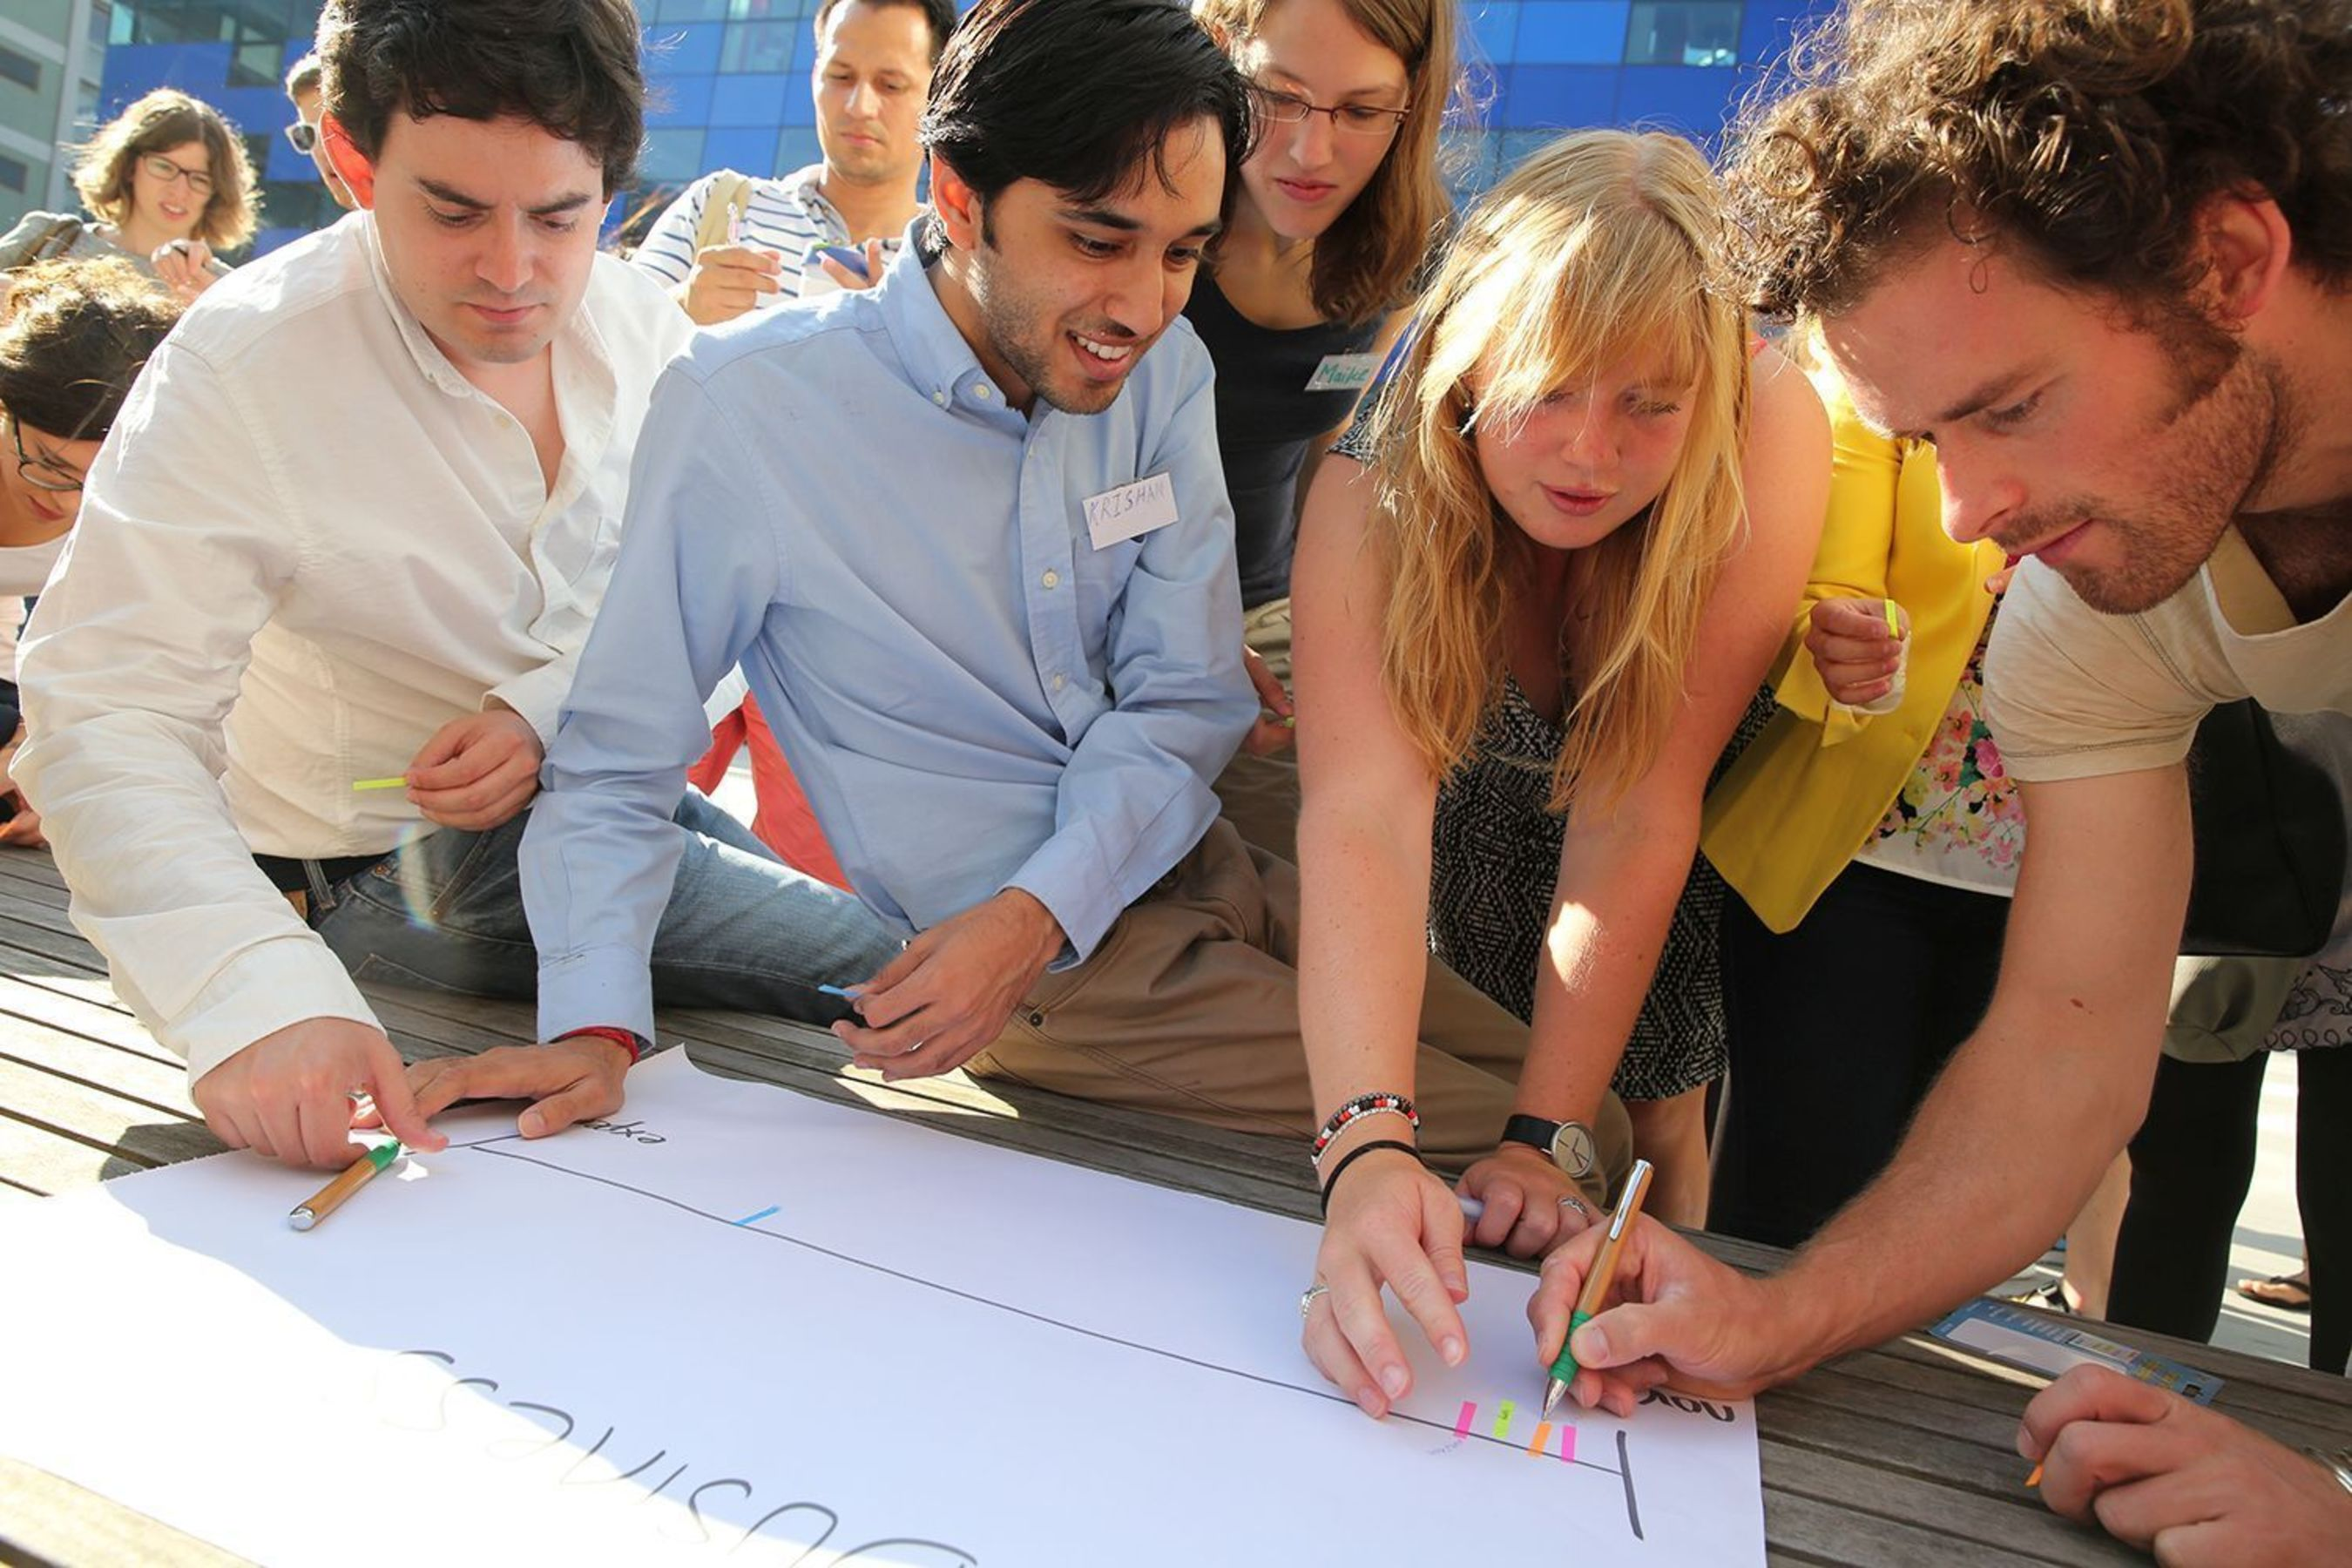 """Students and graduates discuss a business plan that helps tackle climate change at Imperial College London, UK. Participants in the 2015 edition of Climate-KIC's European """"The Journey"""" summer school programme work on ideas for solutions to real-world climate change related issues, and compete in teams. Based on their own creativity and climate knowledge, the teams present a detailed business plan to a judging panel consisting of leading European venture capitalists, startup entrepreneurs and scientists. (PRNewsFoto/Climate-KIC)"""